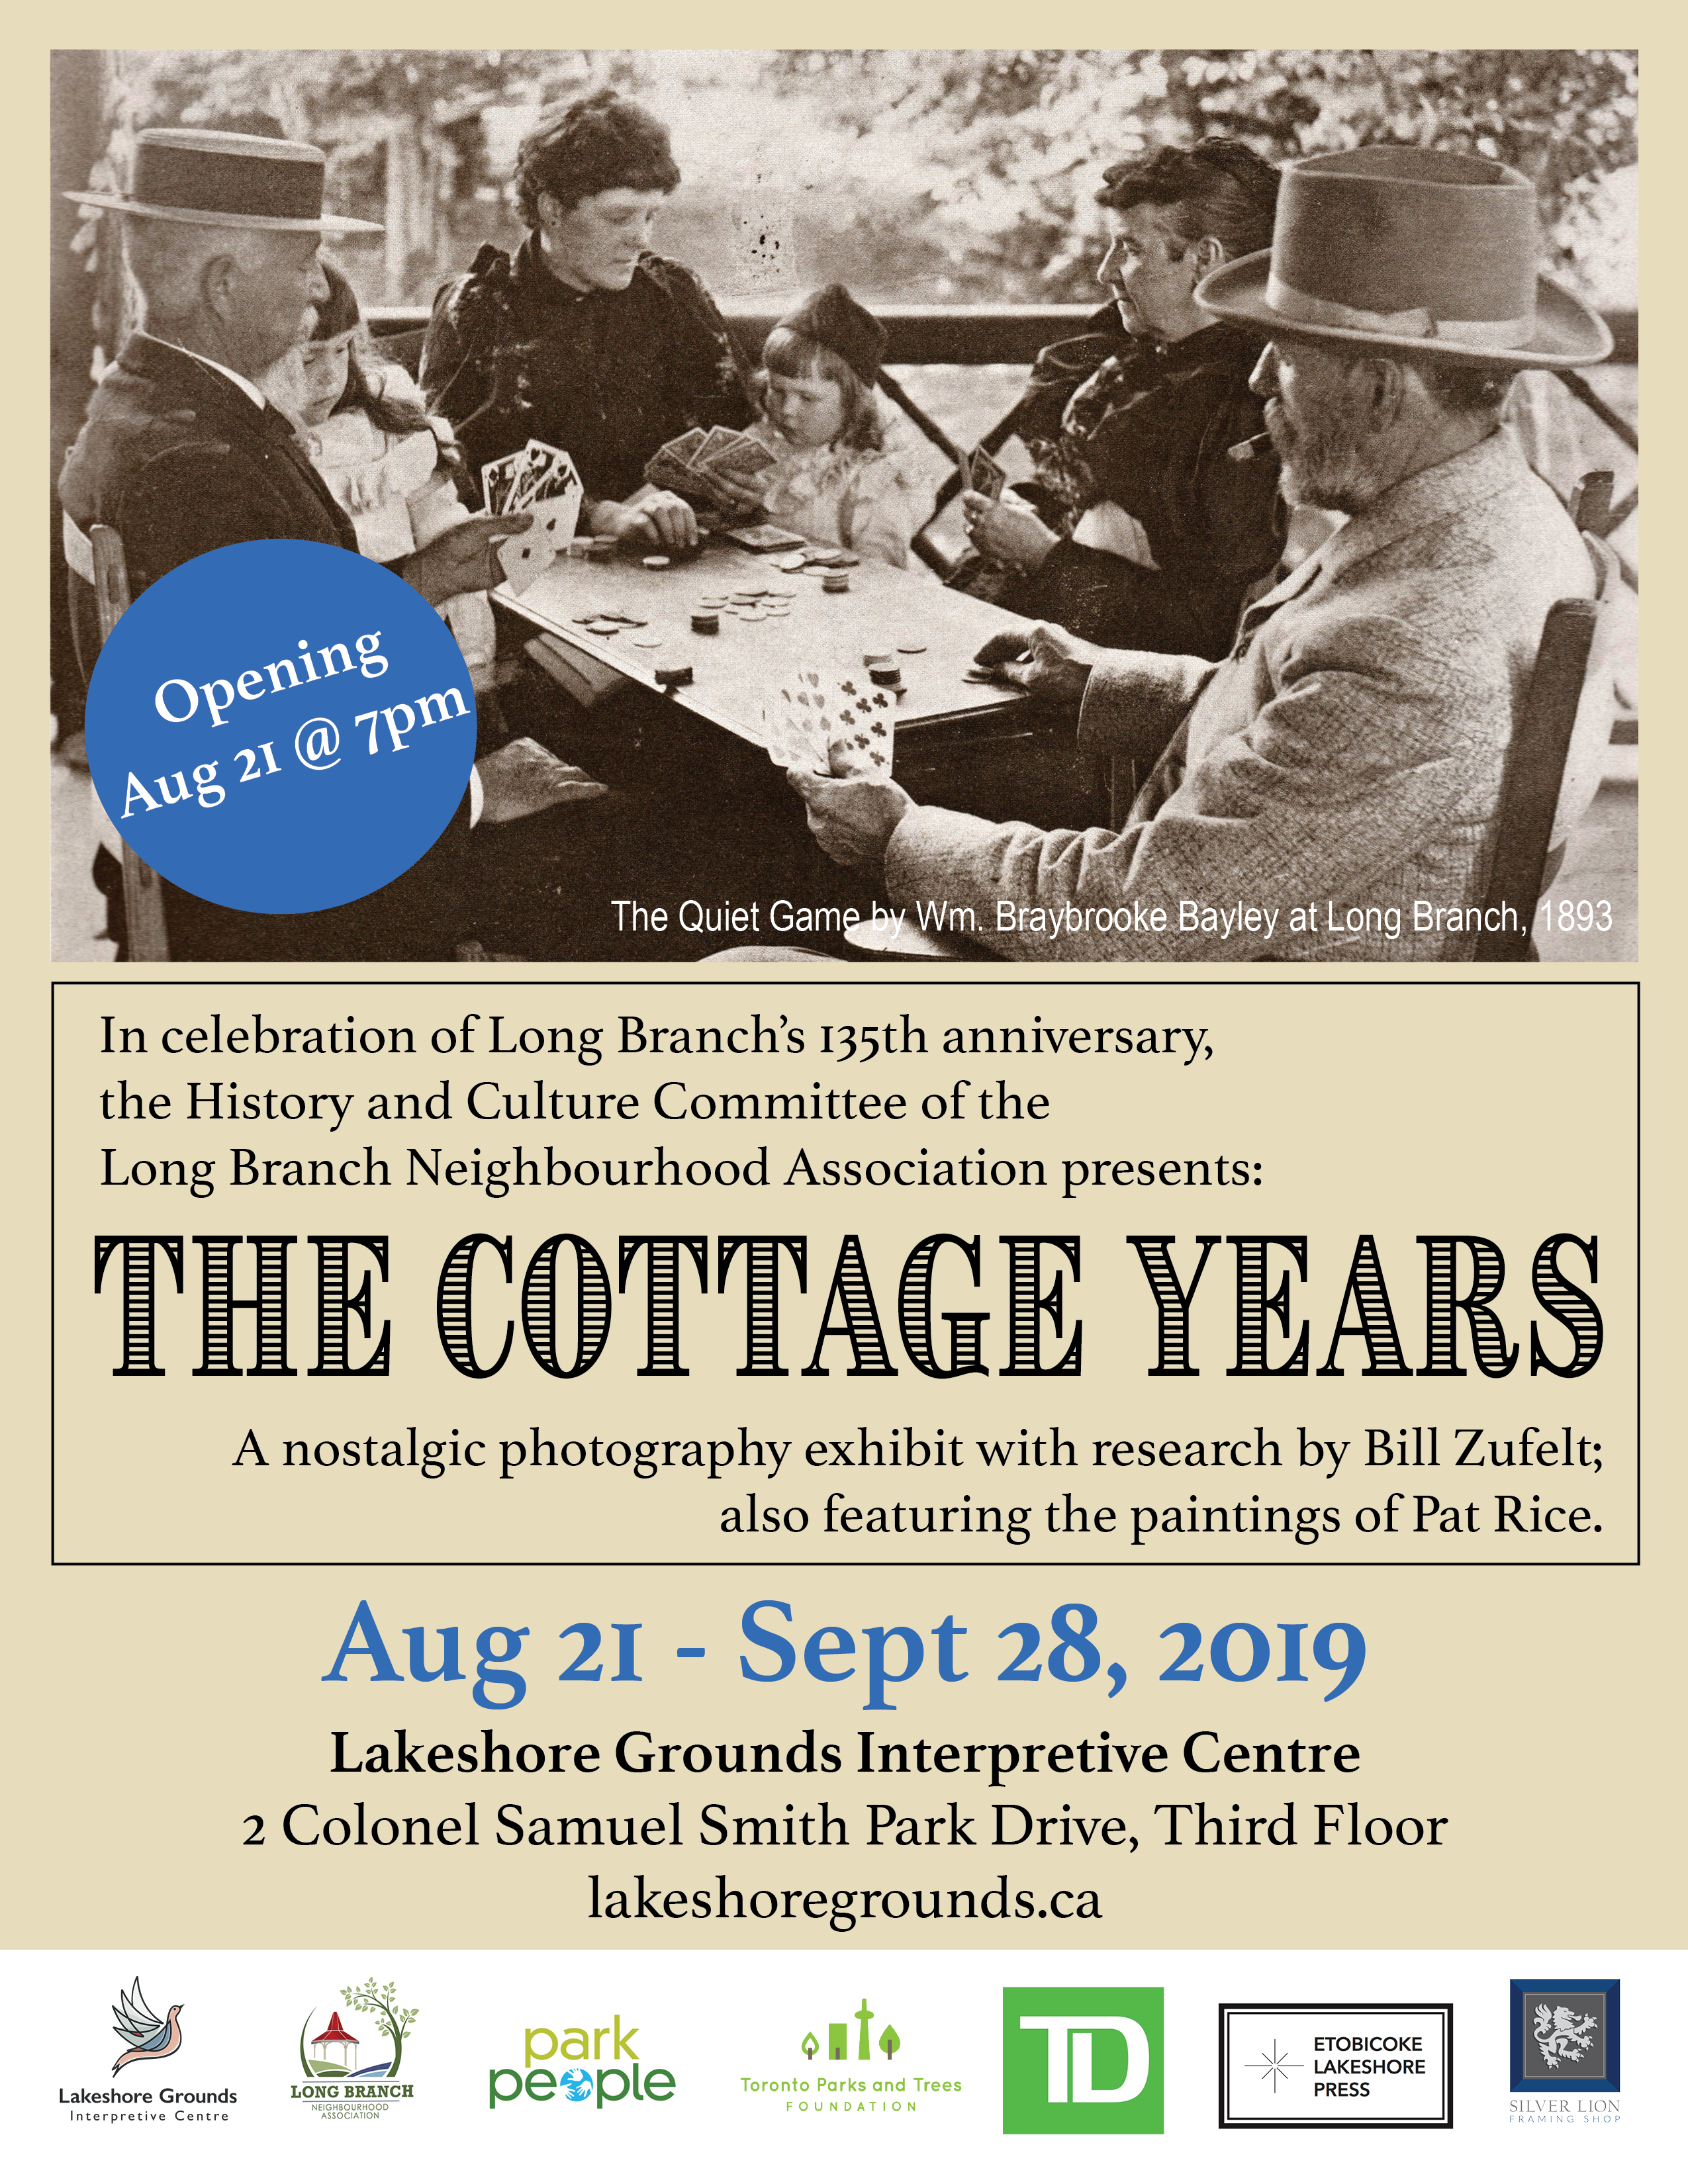 Poster for The Cottage Years exhibit of nostalgic photographs in celebration of Long Branch's 135th anniversary